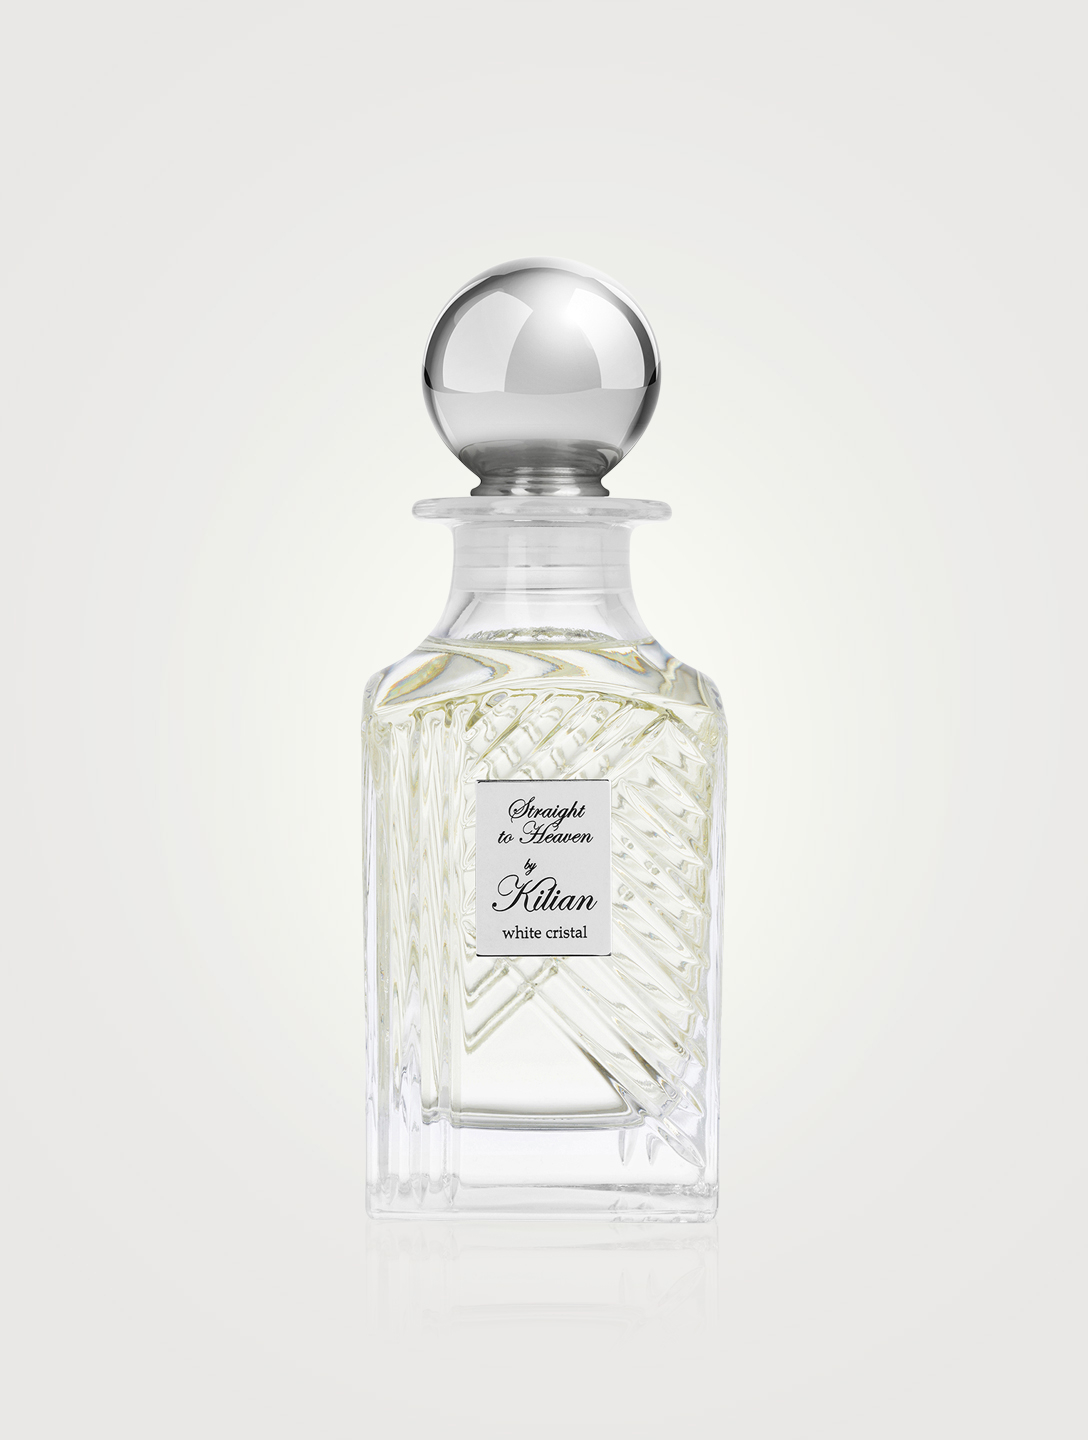 KILIAN Mini-carafe d'eau de parfum Straight to Heaven, white cristal Beauté